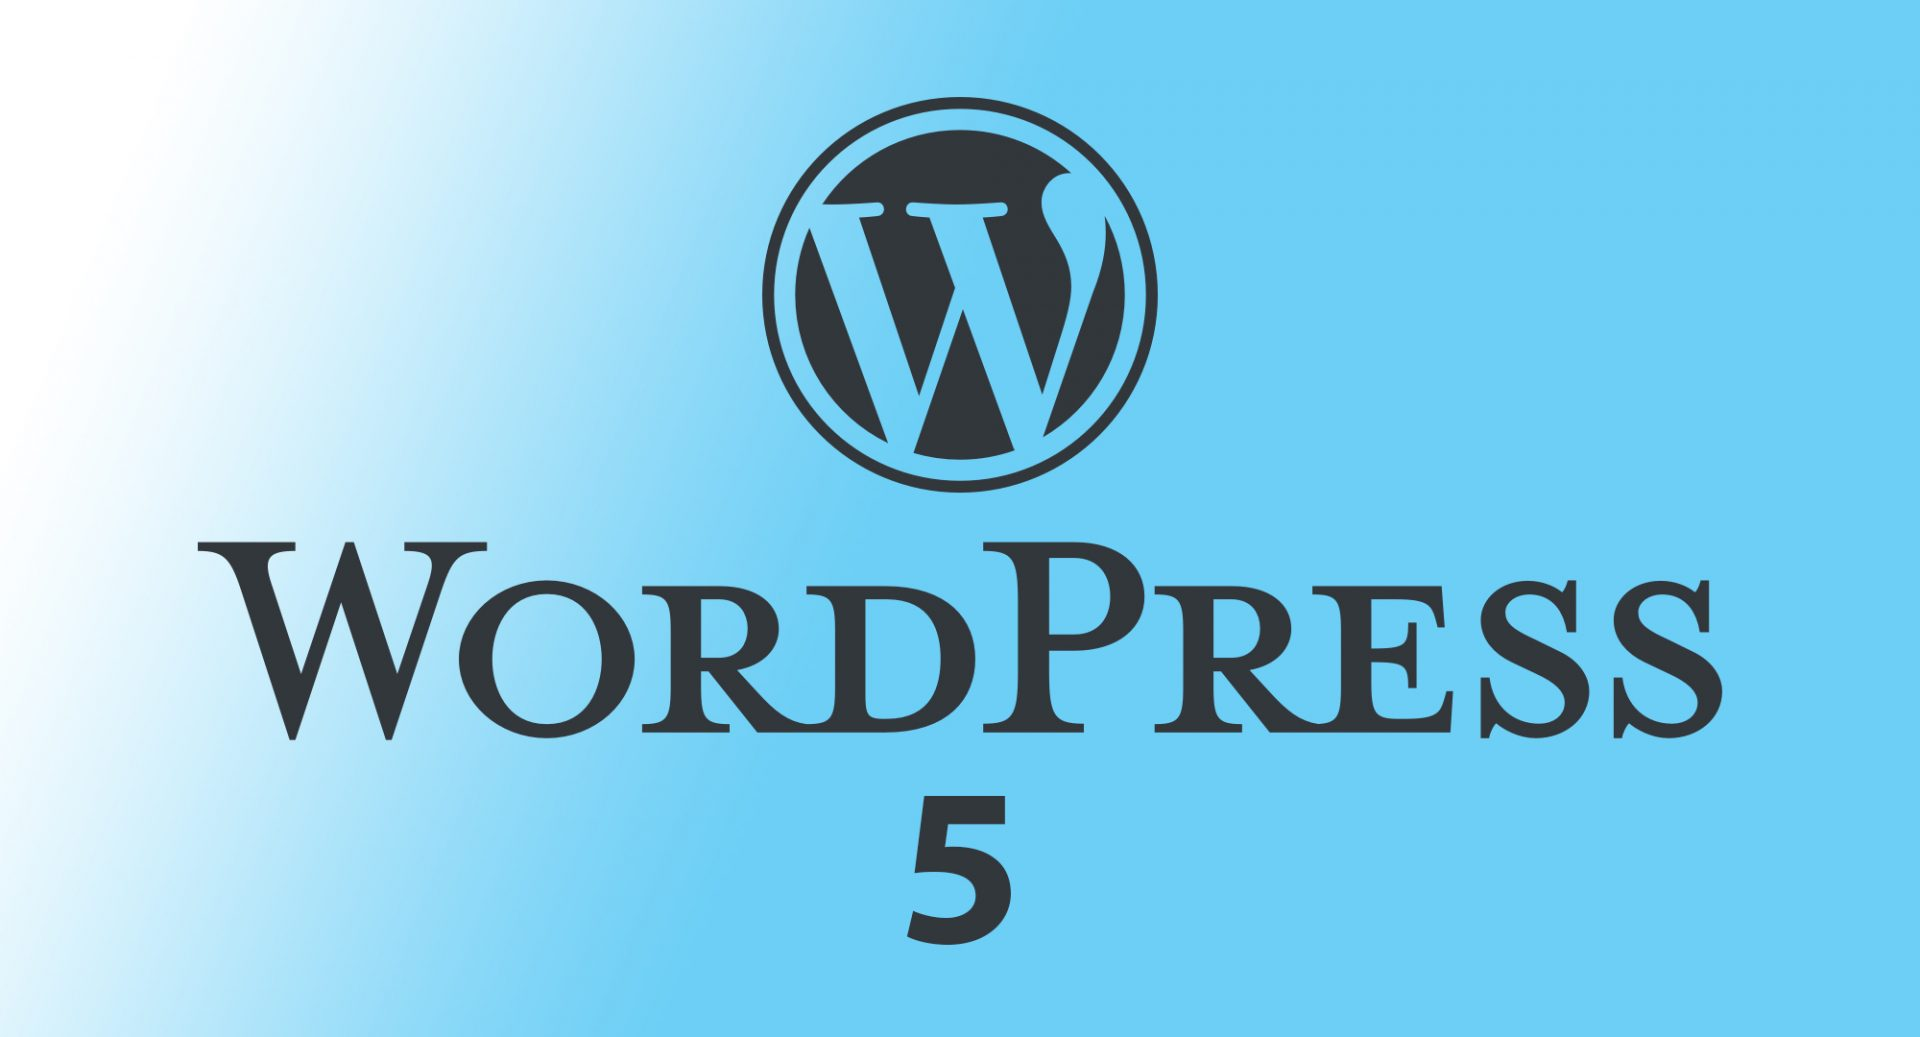 WordPress Launches 5.0: Discover The Changes Affecting Your Website